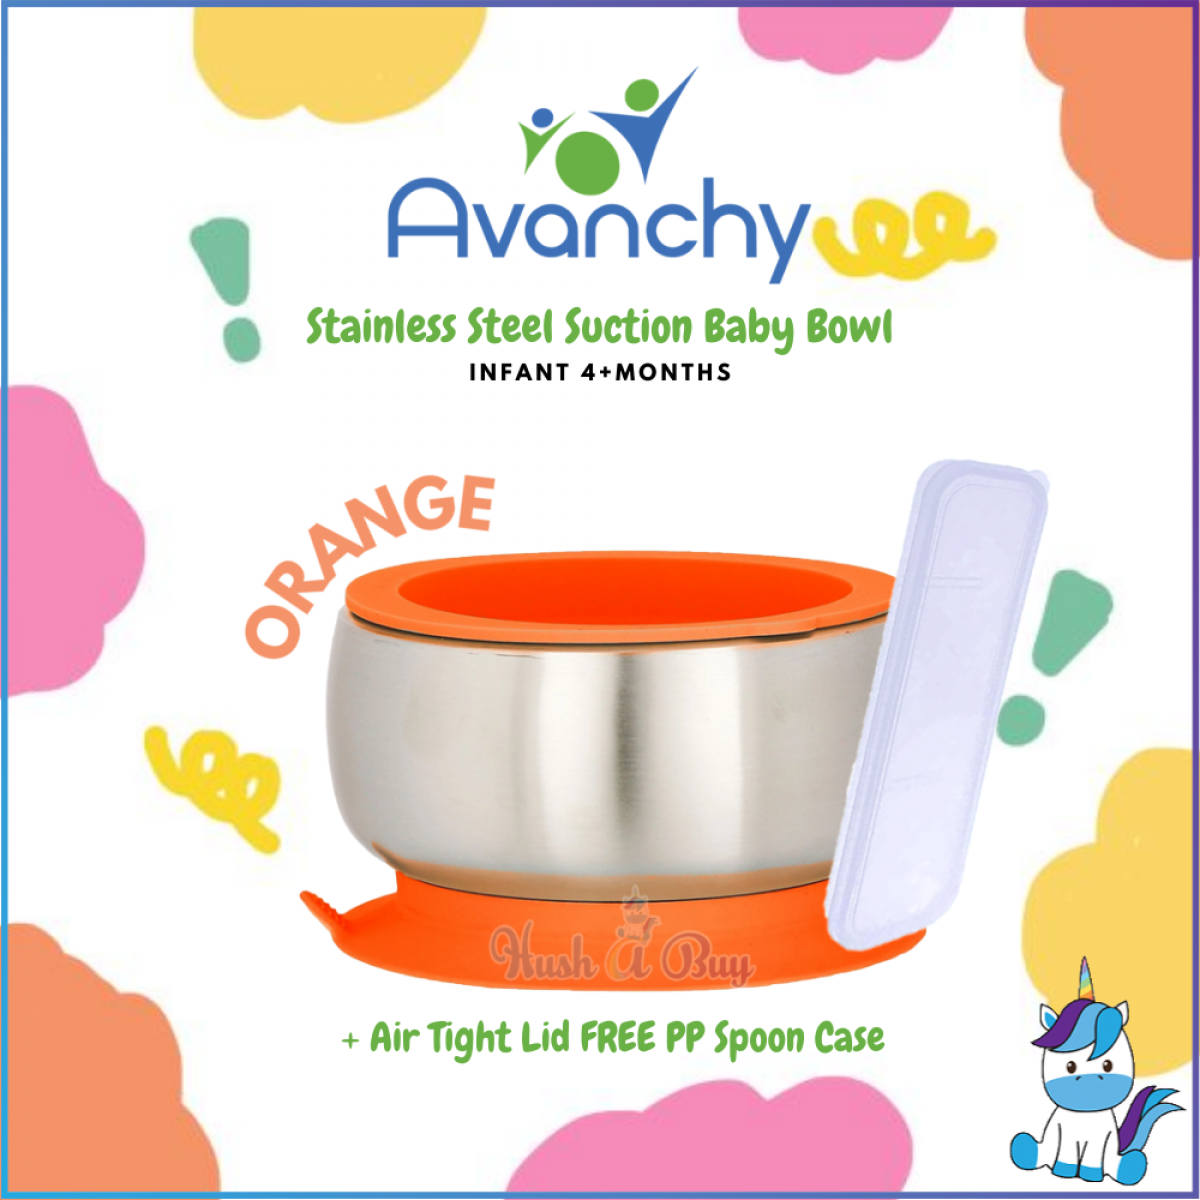 Avanchy Stainless Steel Suction Baby Bowl + Air Tight Lid FREE PP Spoon Case